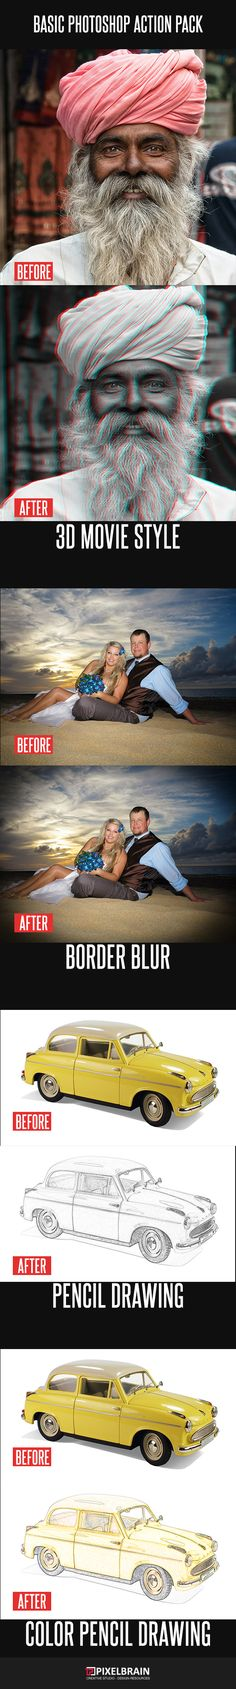 Basic Style Photoshop Action by PixelBrainCS Basic Photoshop Action High quality Photoshop Action. Convert your images to 3d Movie style with this cool 1-click Photoshop acti